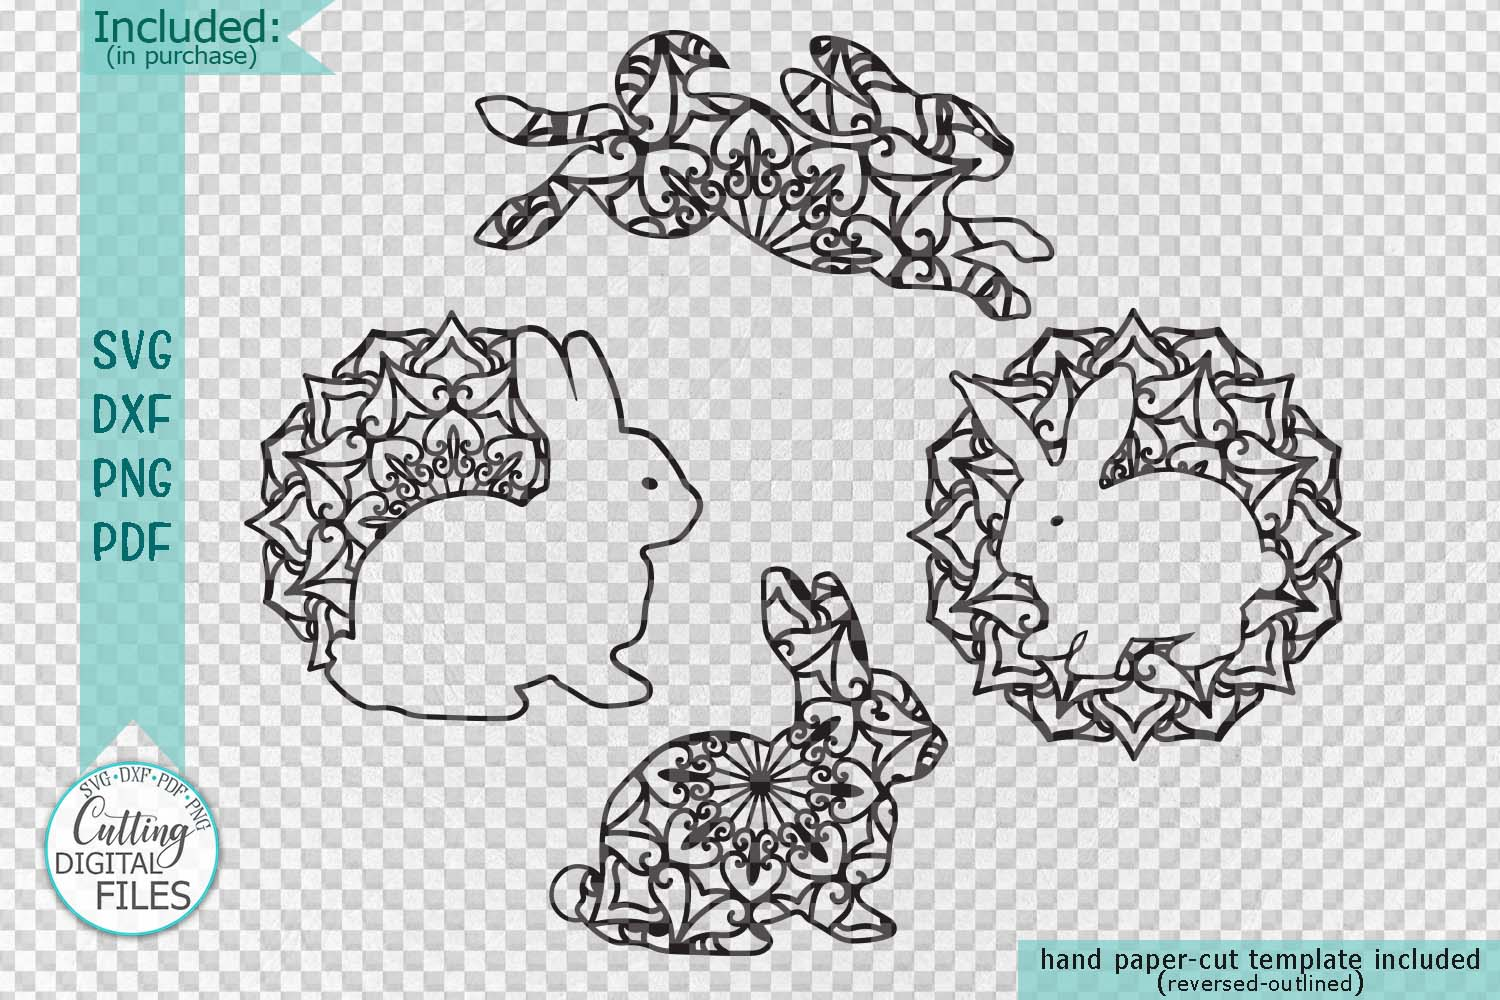 Mandala Easter bunnies cut out set svg dxf pdfcutting files example image 2